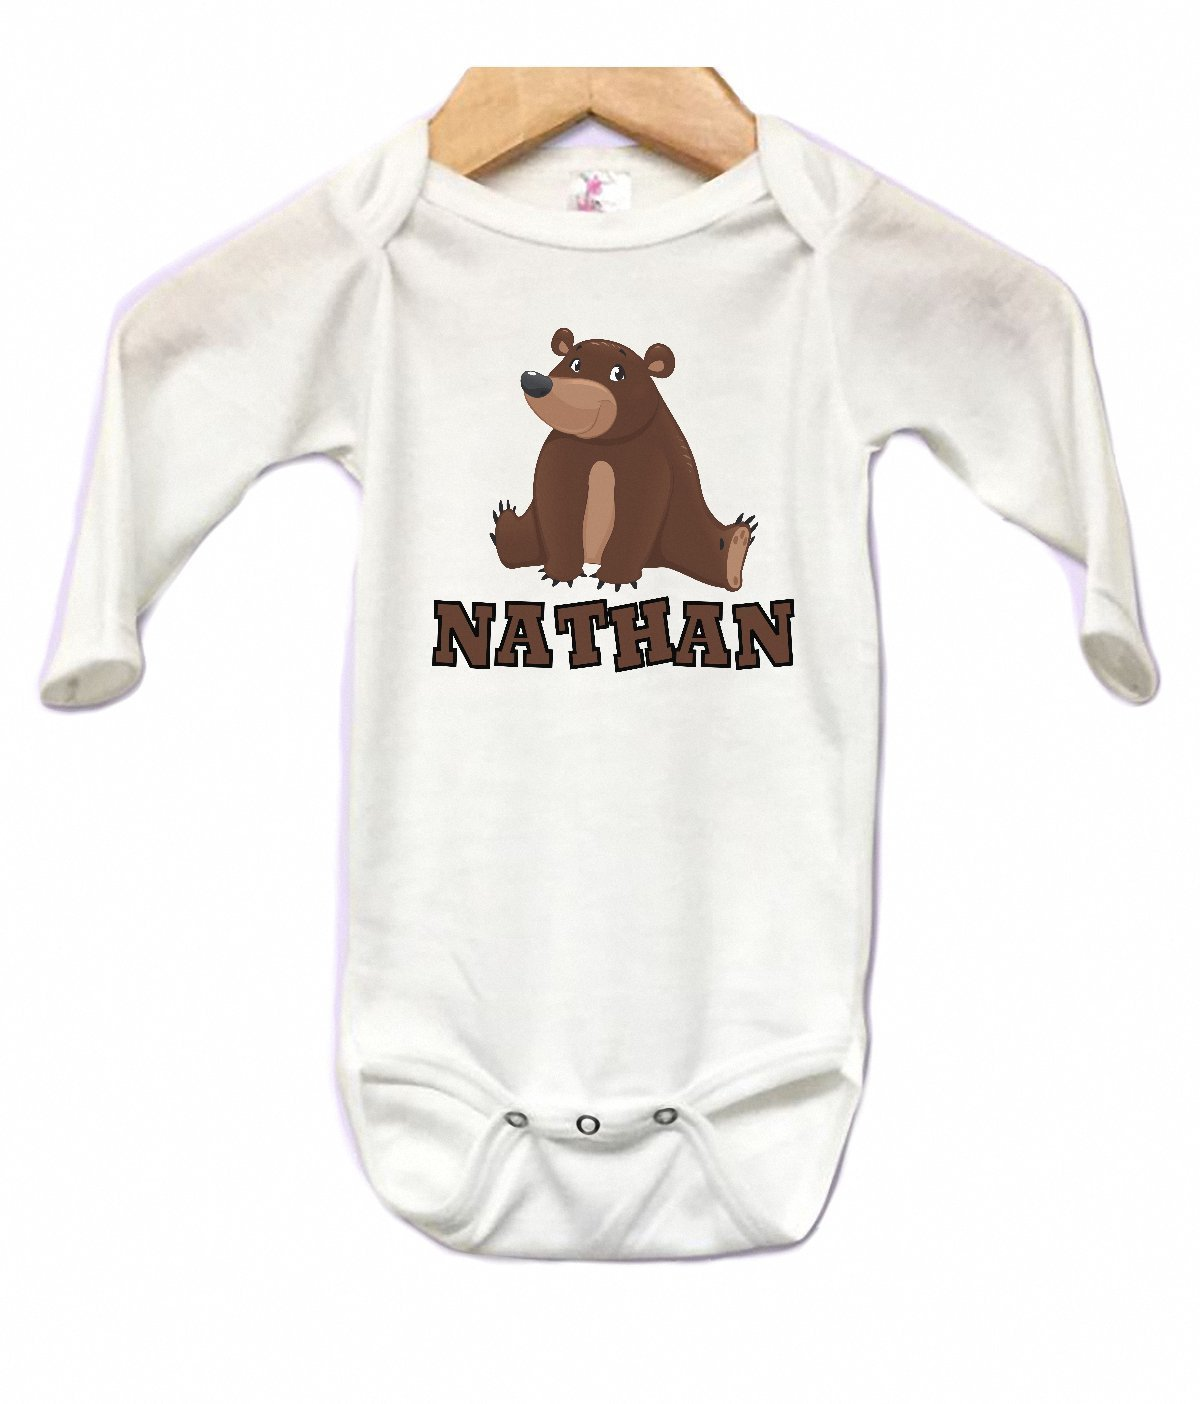 Onesie Long Sleeve Body Suit Babys First Christmas Bear Book Personalized Name Custom 0 to 3 mos or 3 to 6 months or 6 to 12 months for Boys or Girls